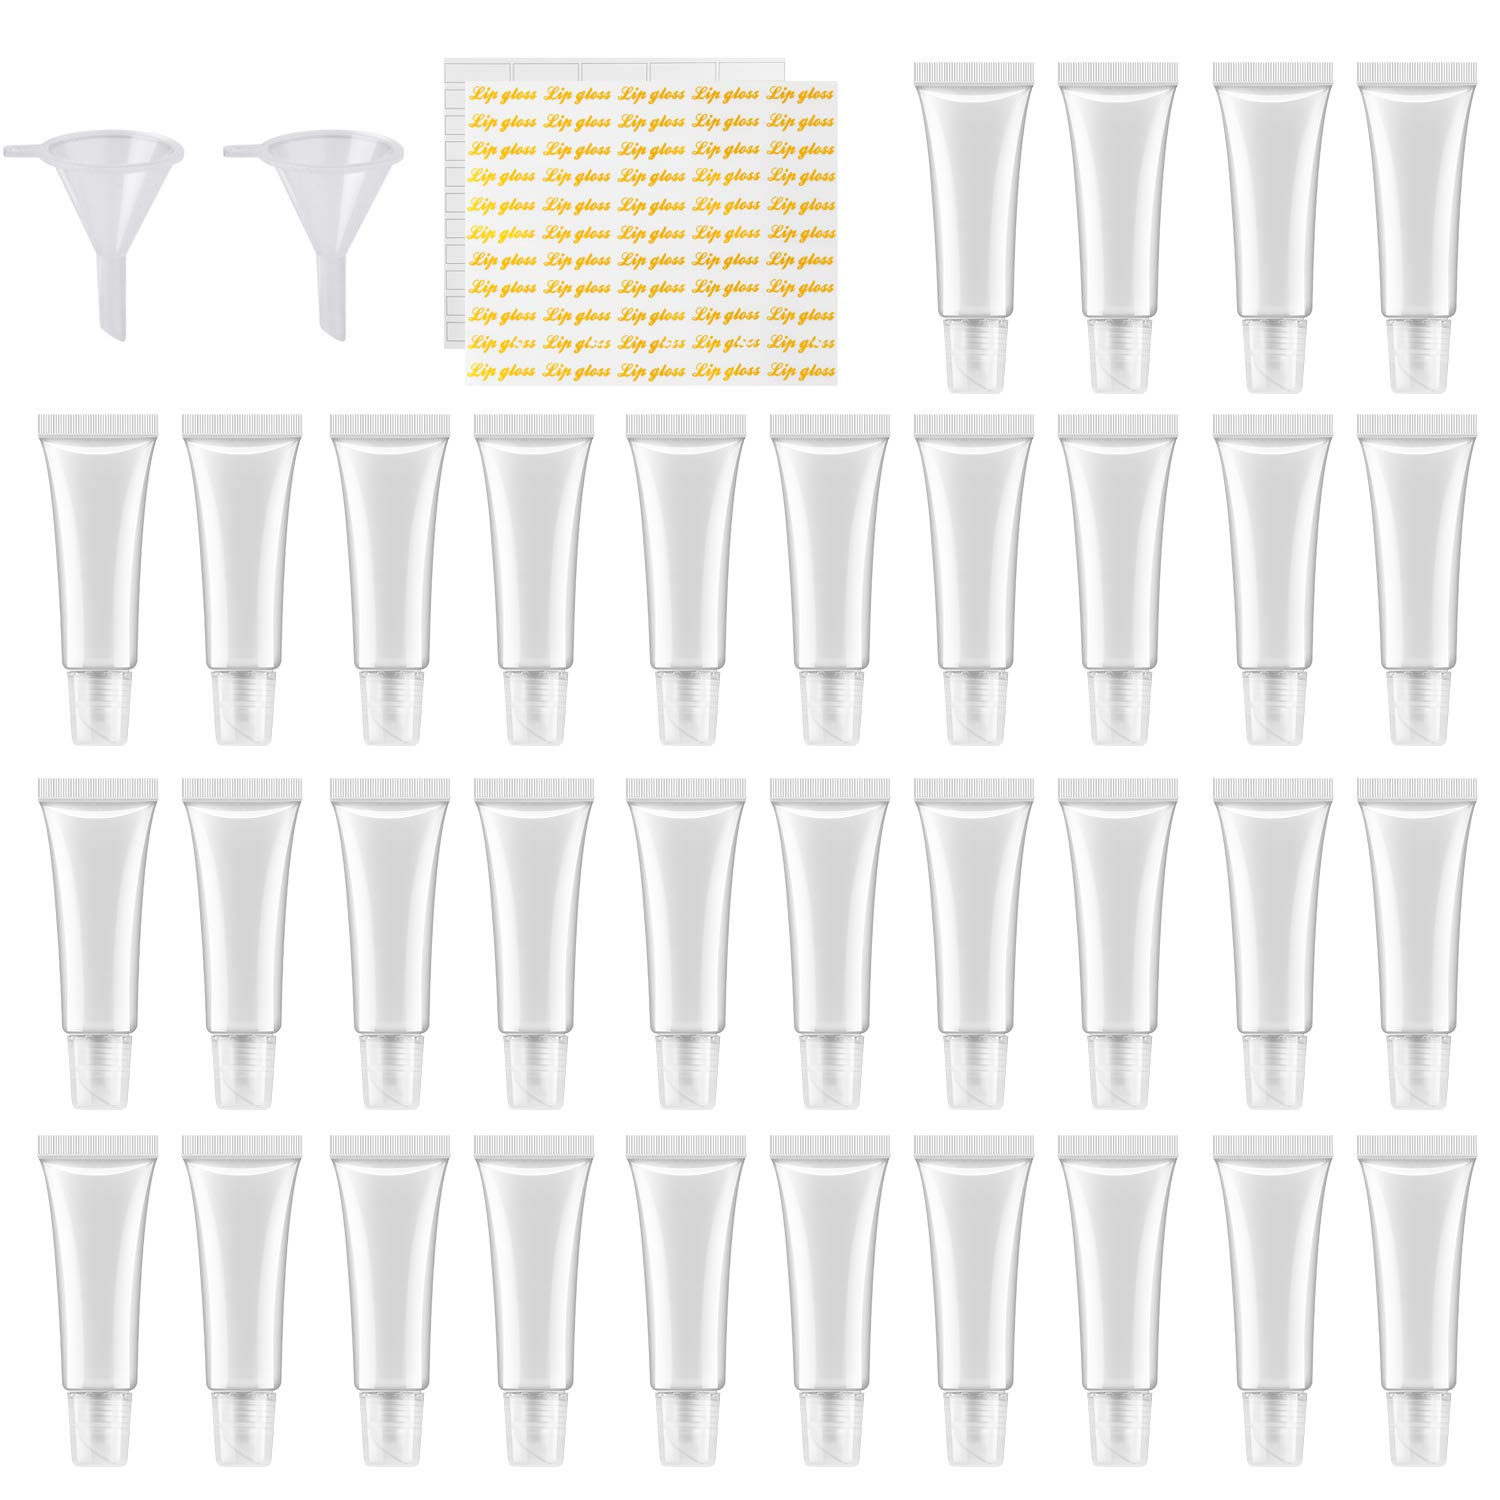 110Pcs 10ml Empty Tubes Lip empty lip gloss containers for Lip Gloss Balm Cosmetic by HRLORKC